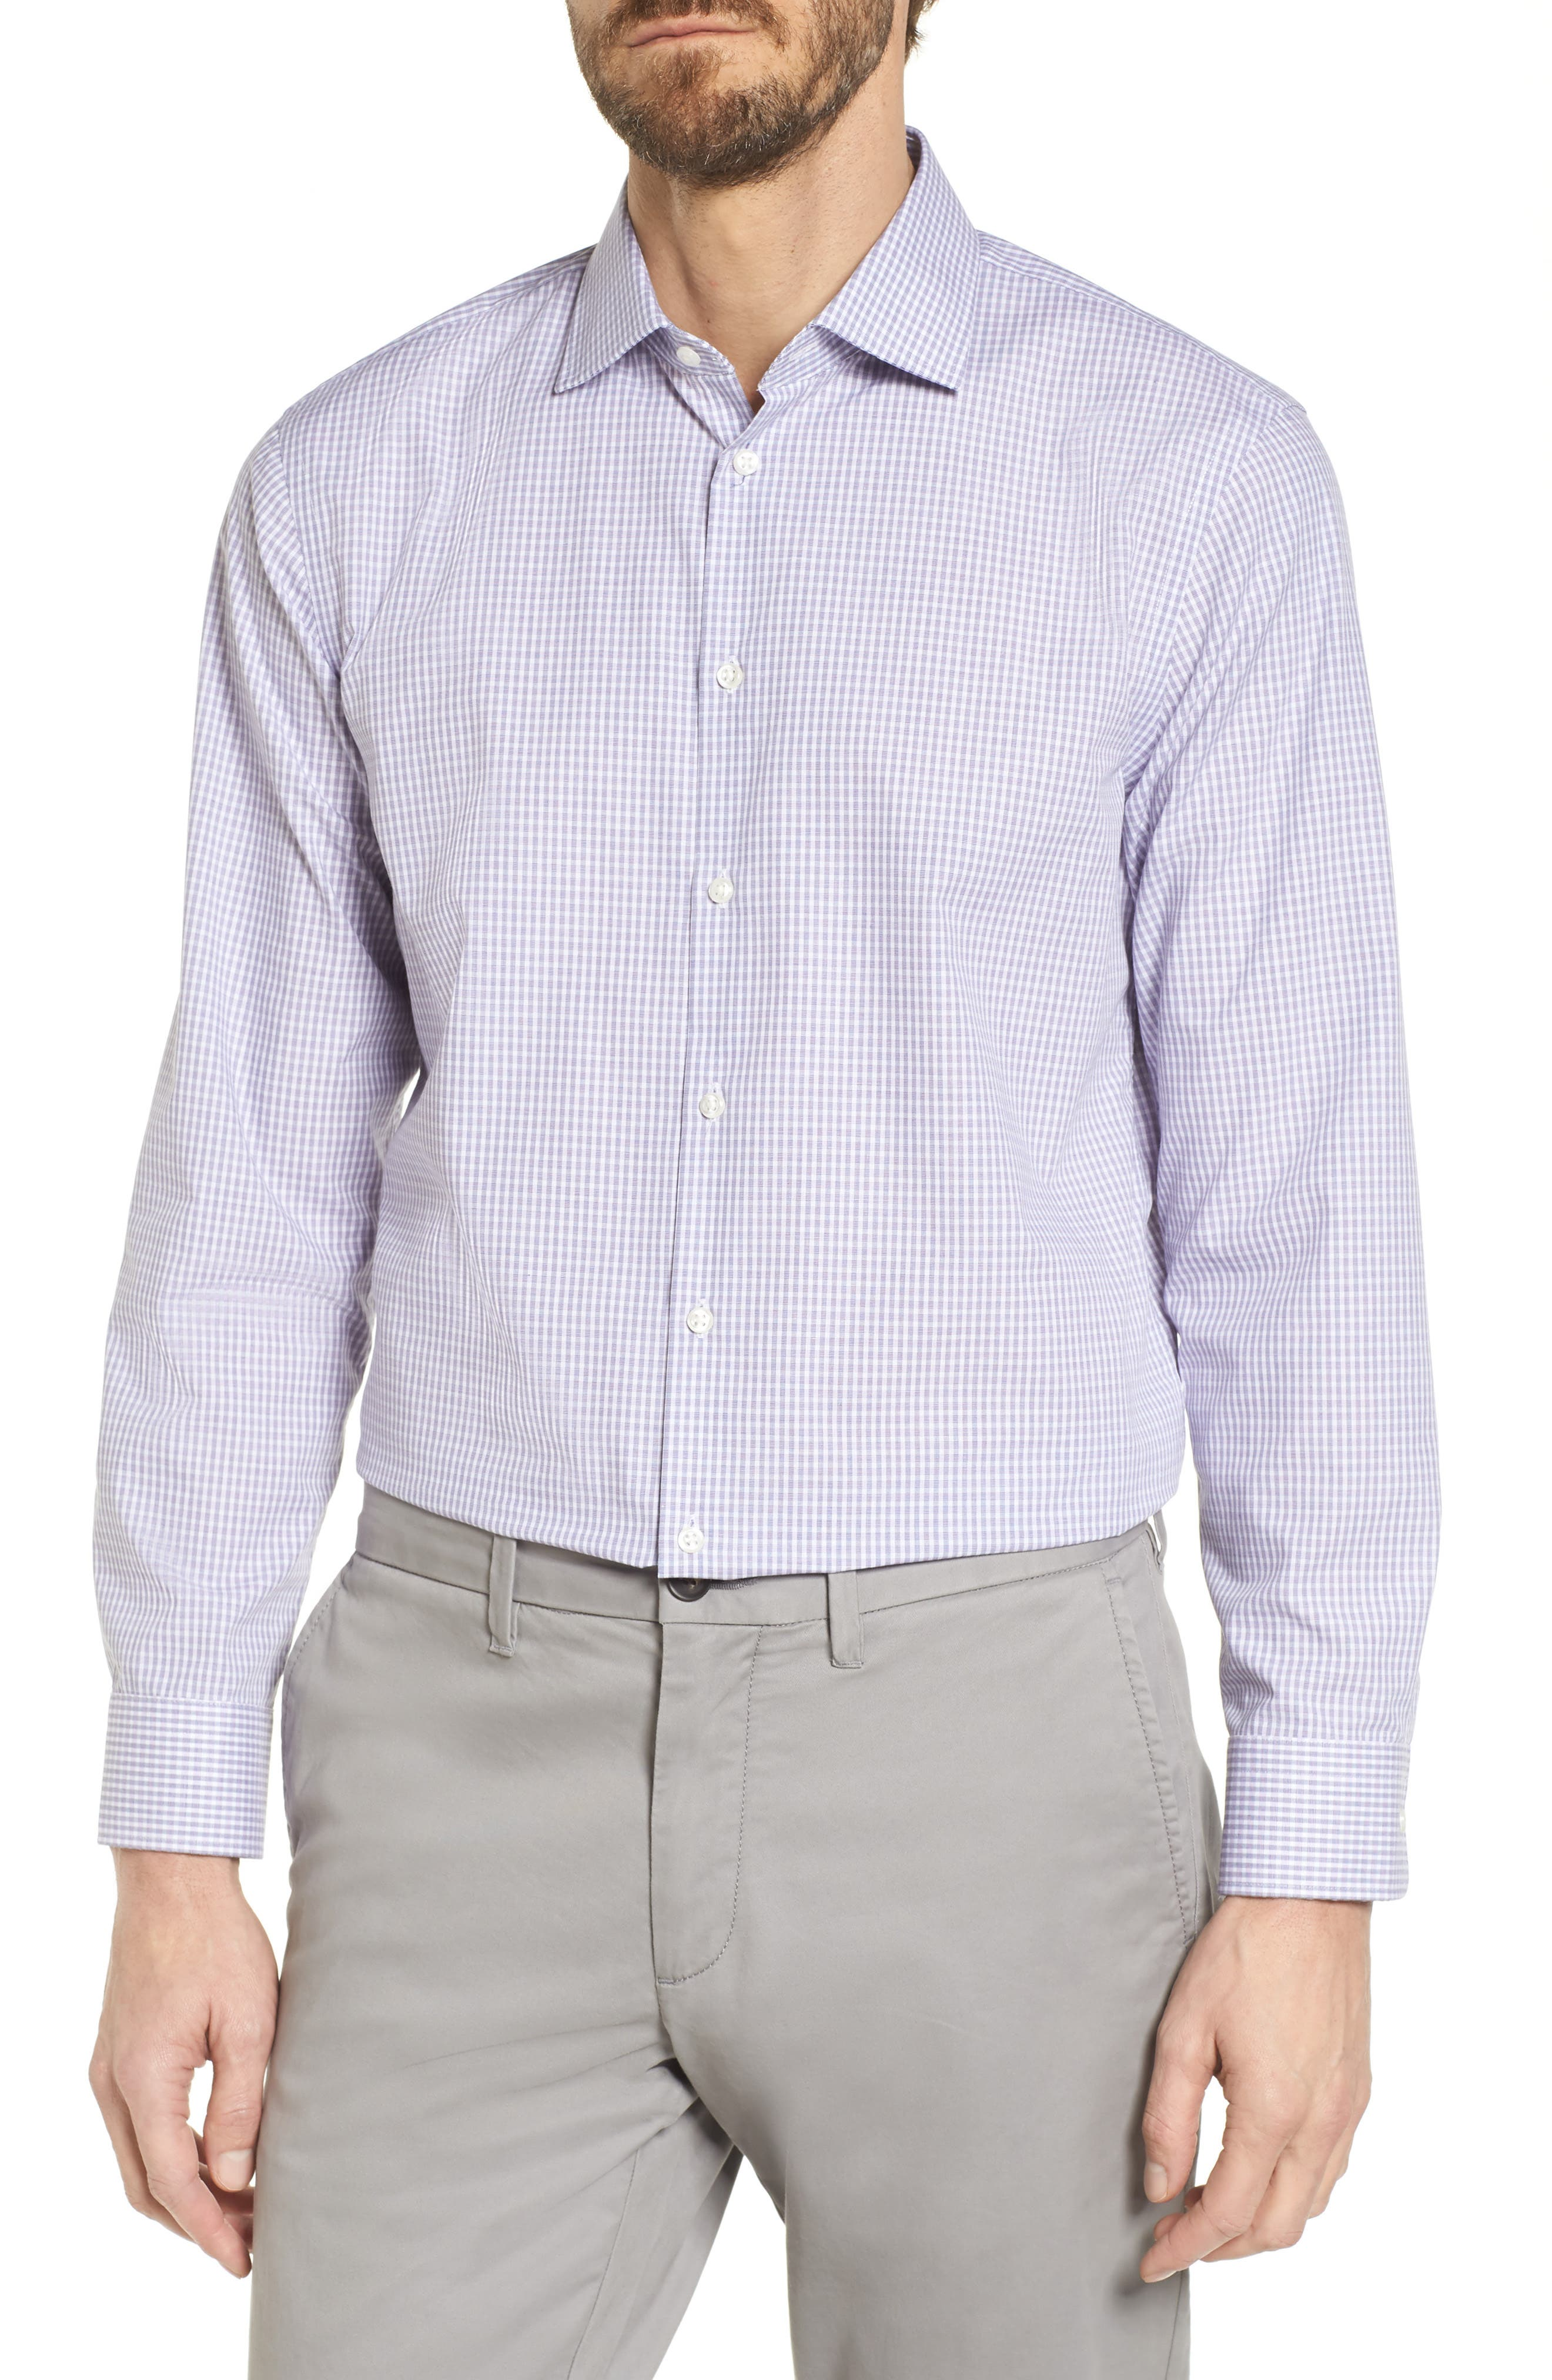 Alternate Image 1 Selected - Nordstrom Men's Shop Extra Trim Fit Non-Iron Check Dress Shirt